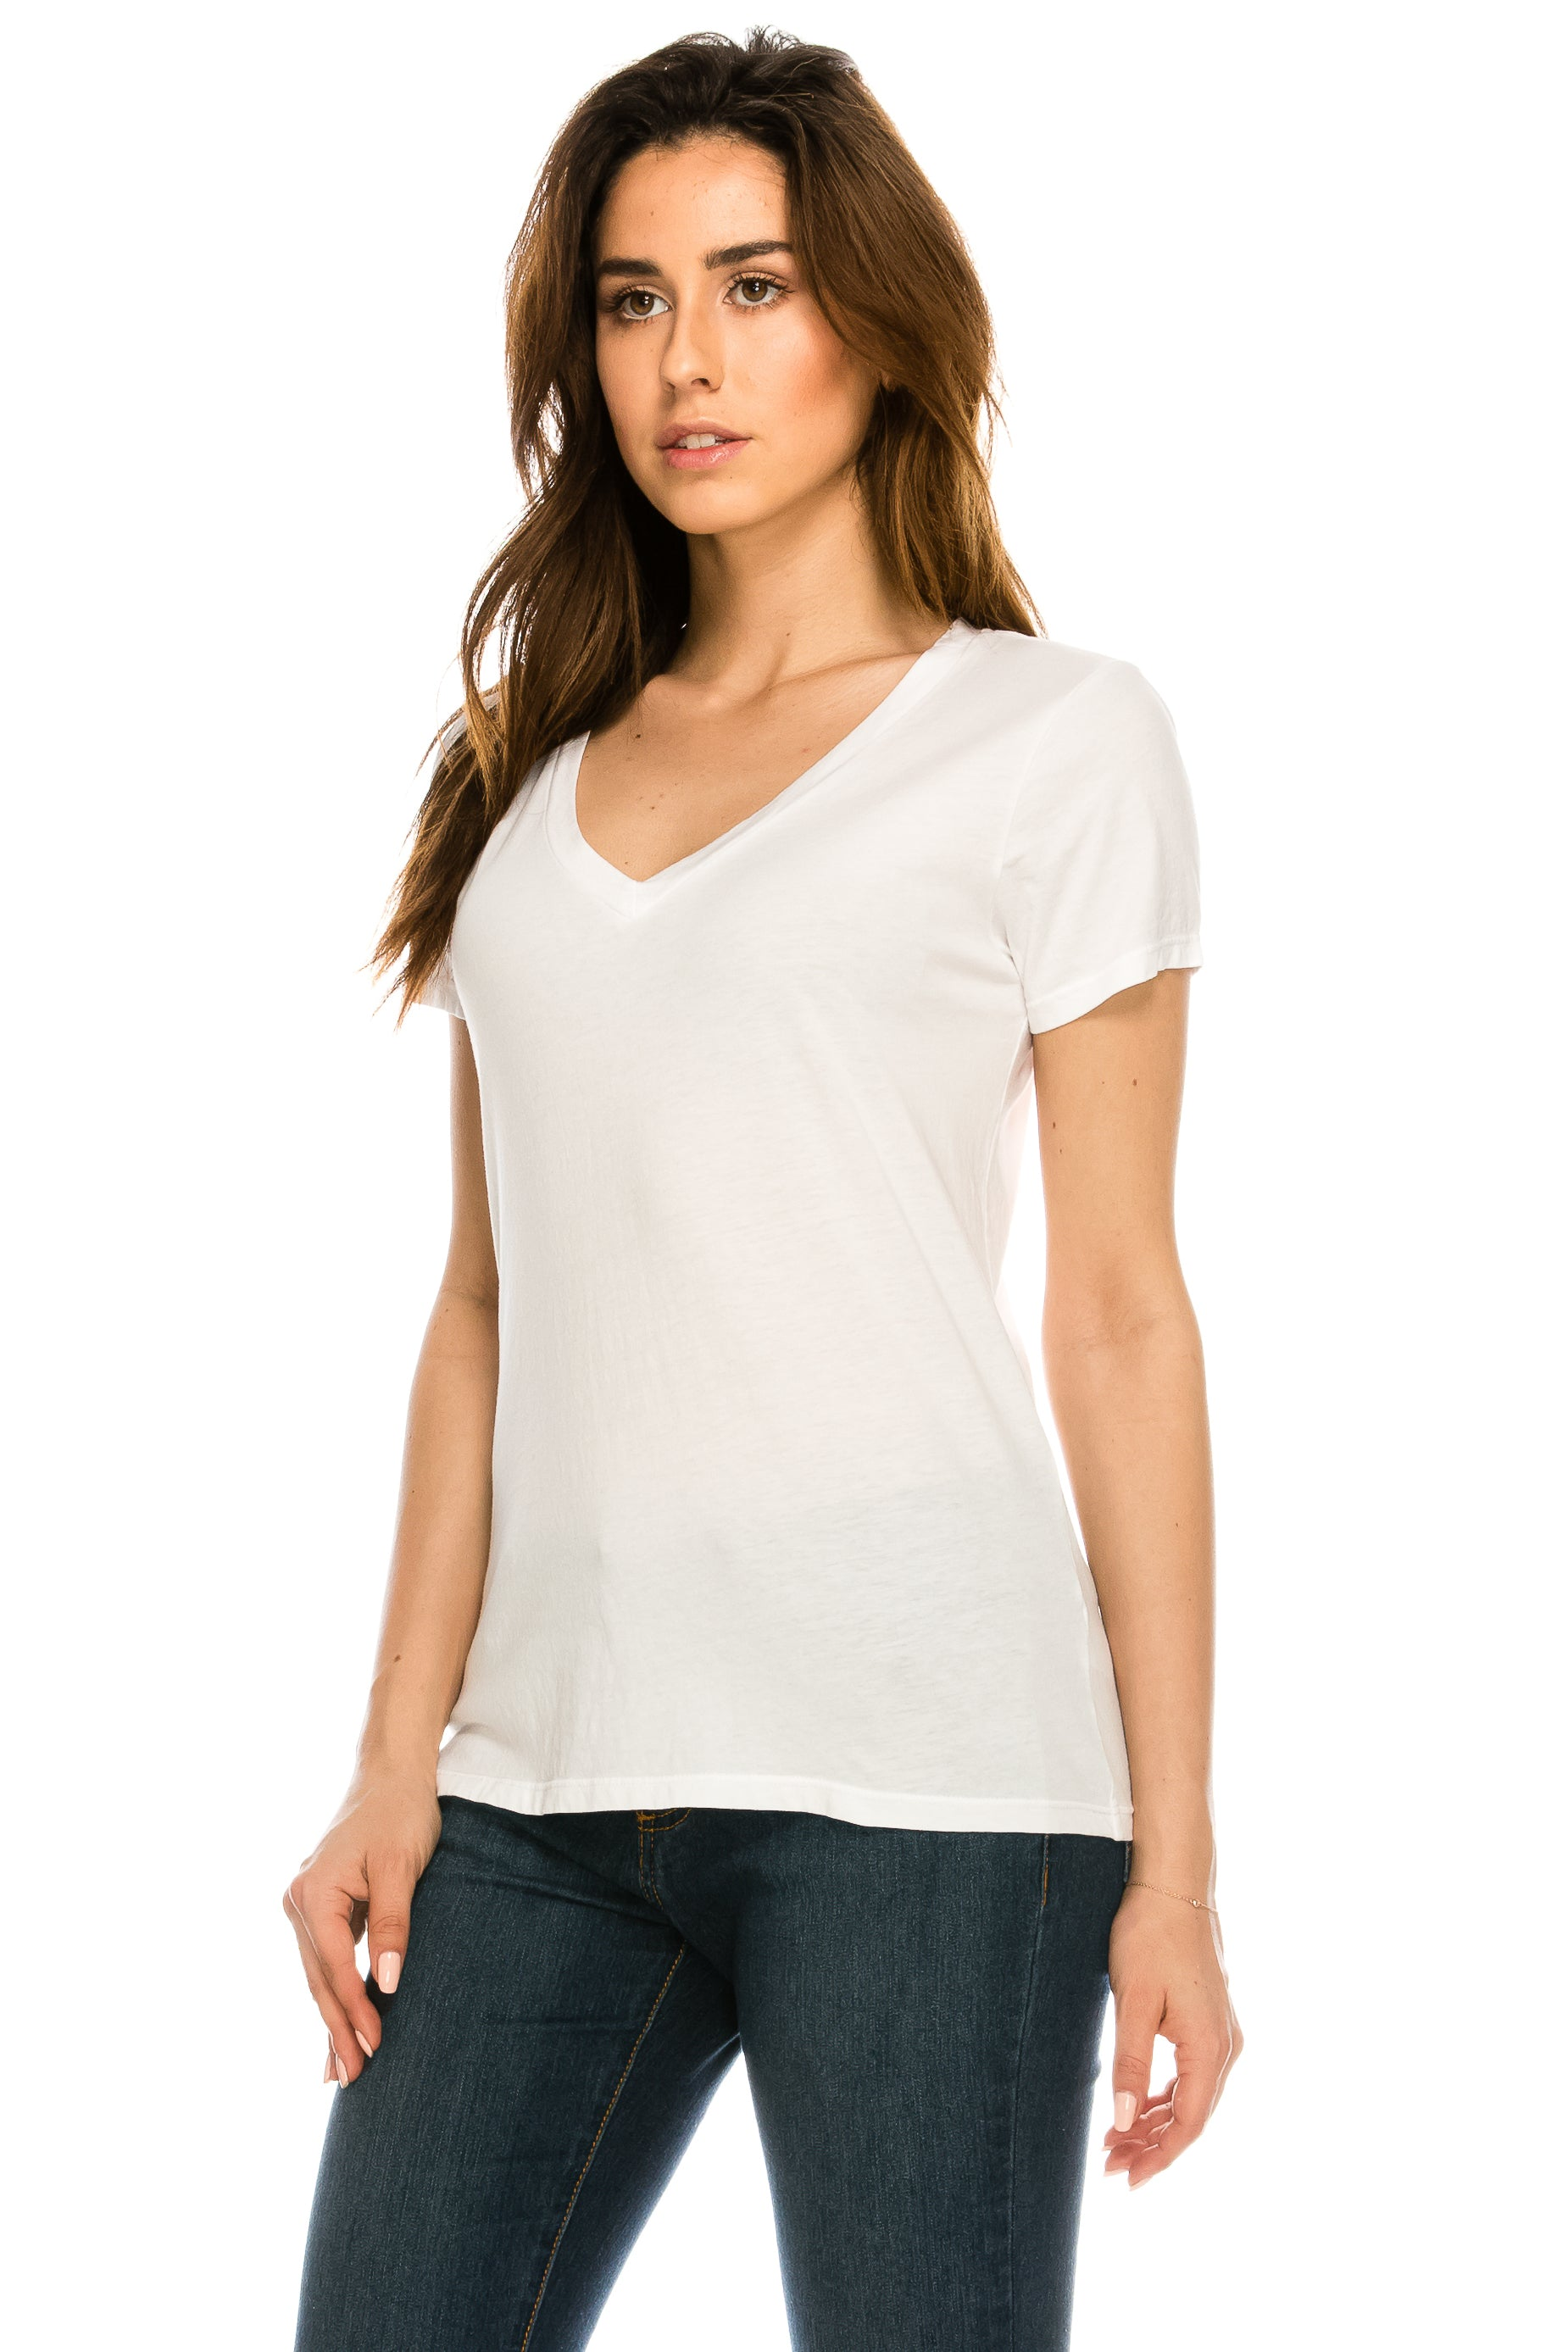 WOMENS S/S PIMA COTTON V NECK TEE - MolaInc